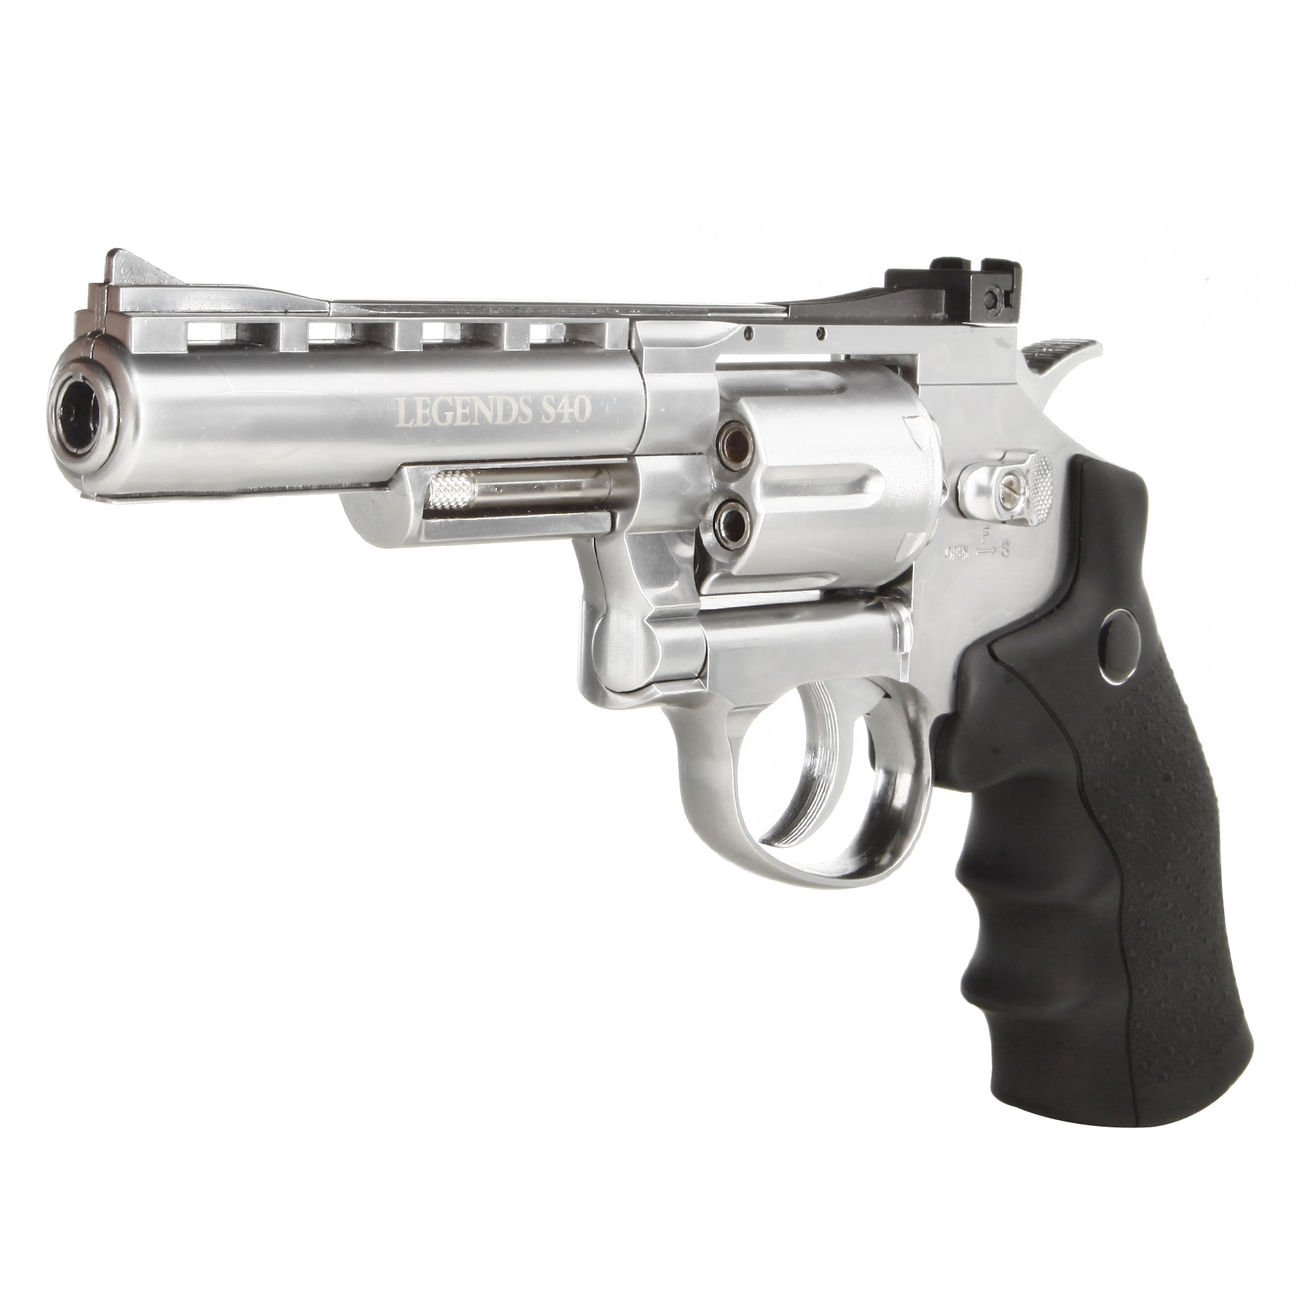 Legends S40 CO2 Revolver 4 Zoll Kal. 4,5mm Diabolo chrom Vollmetall 1